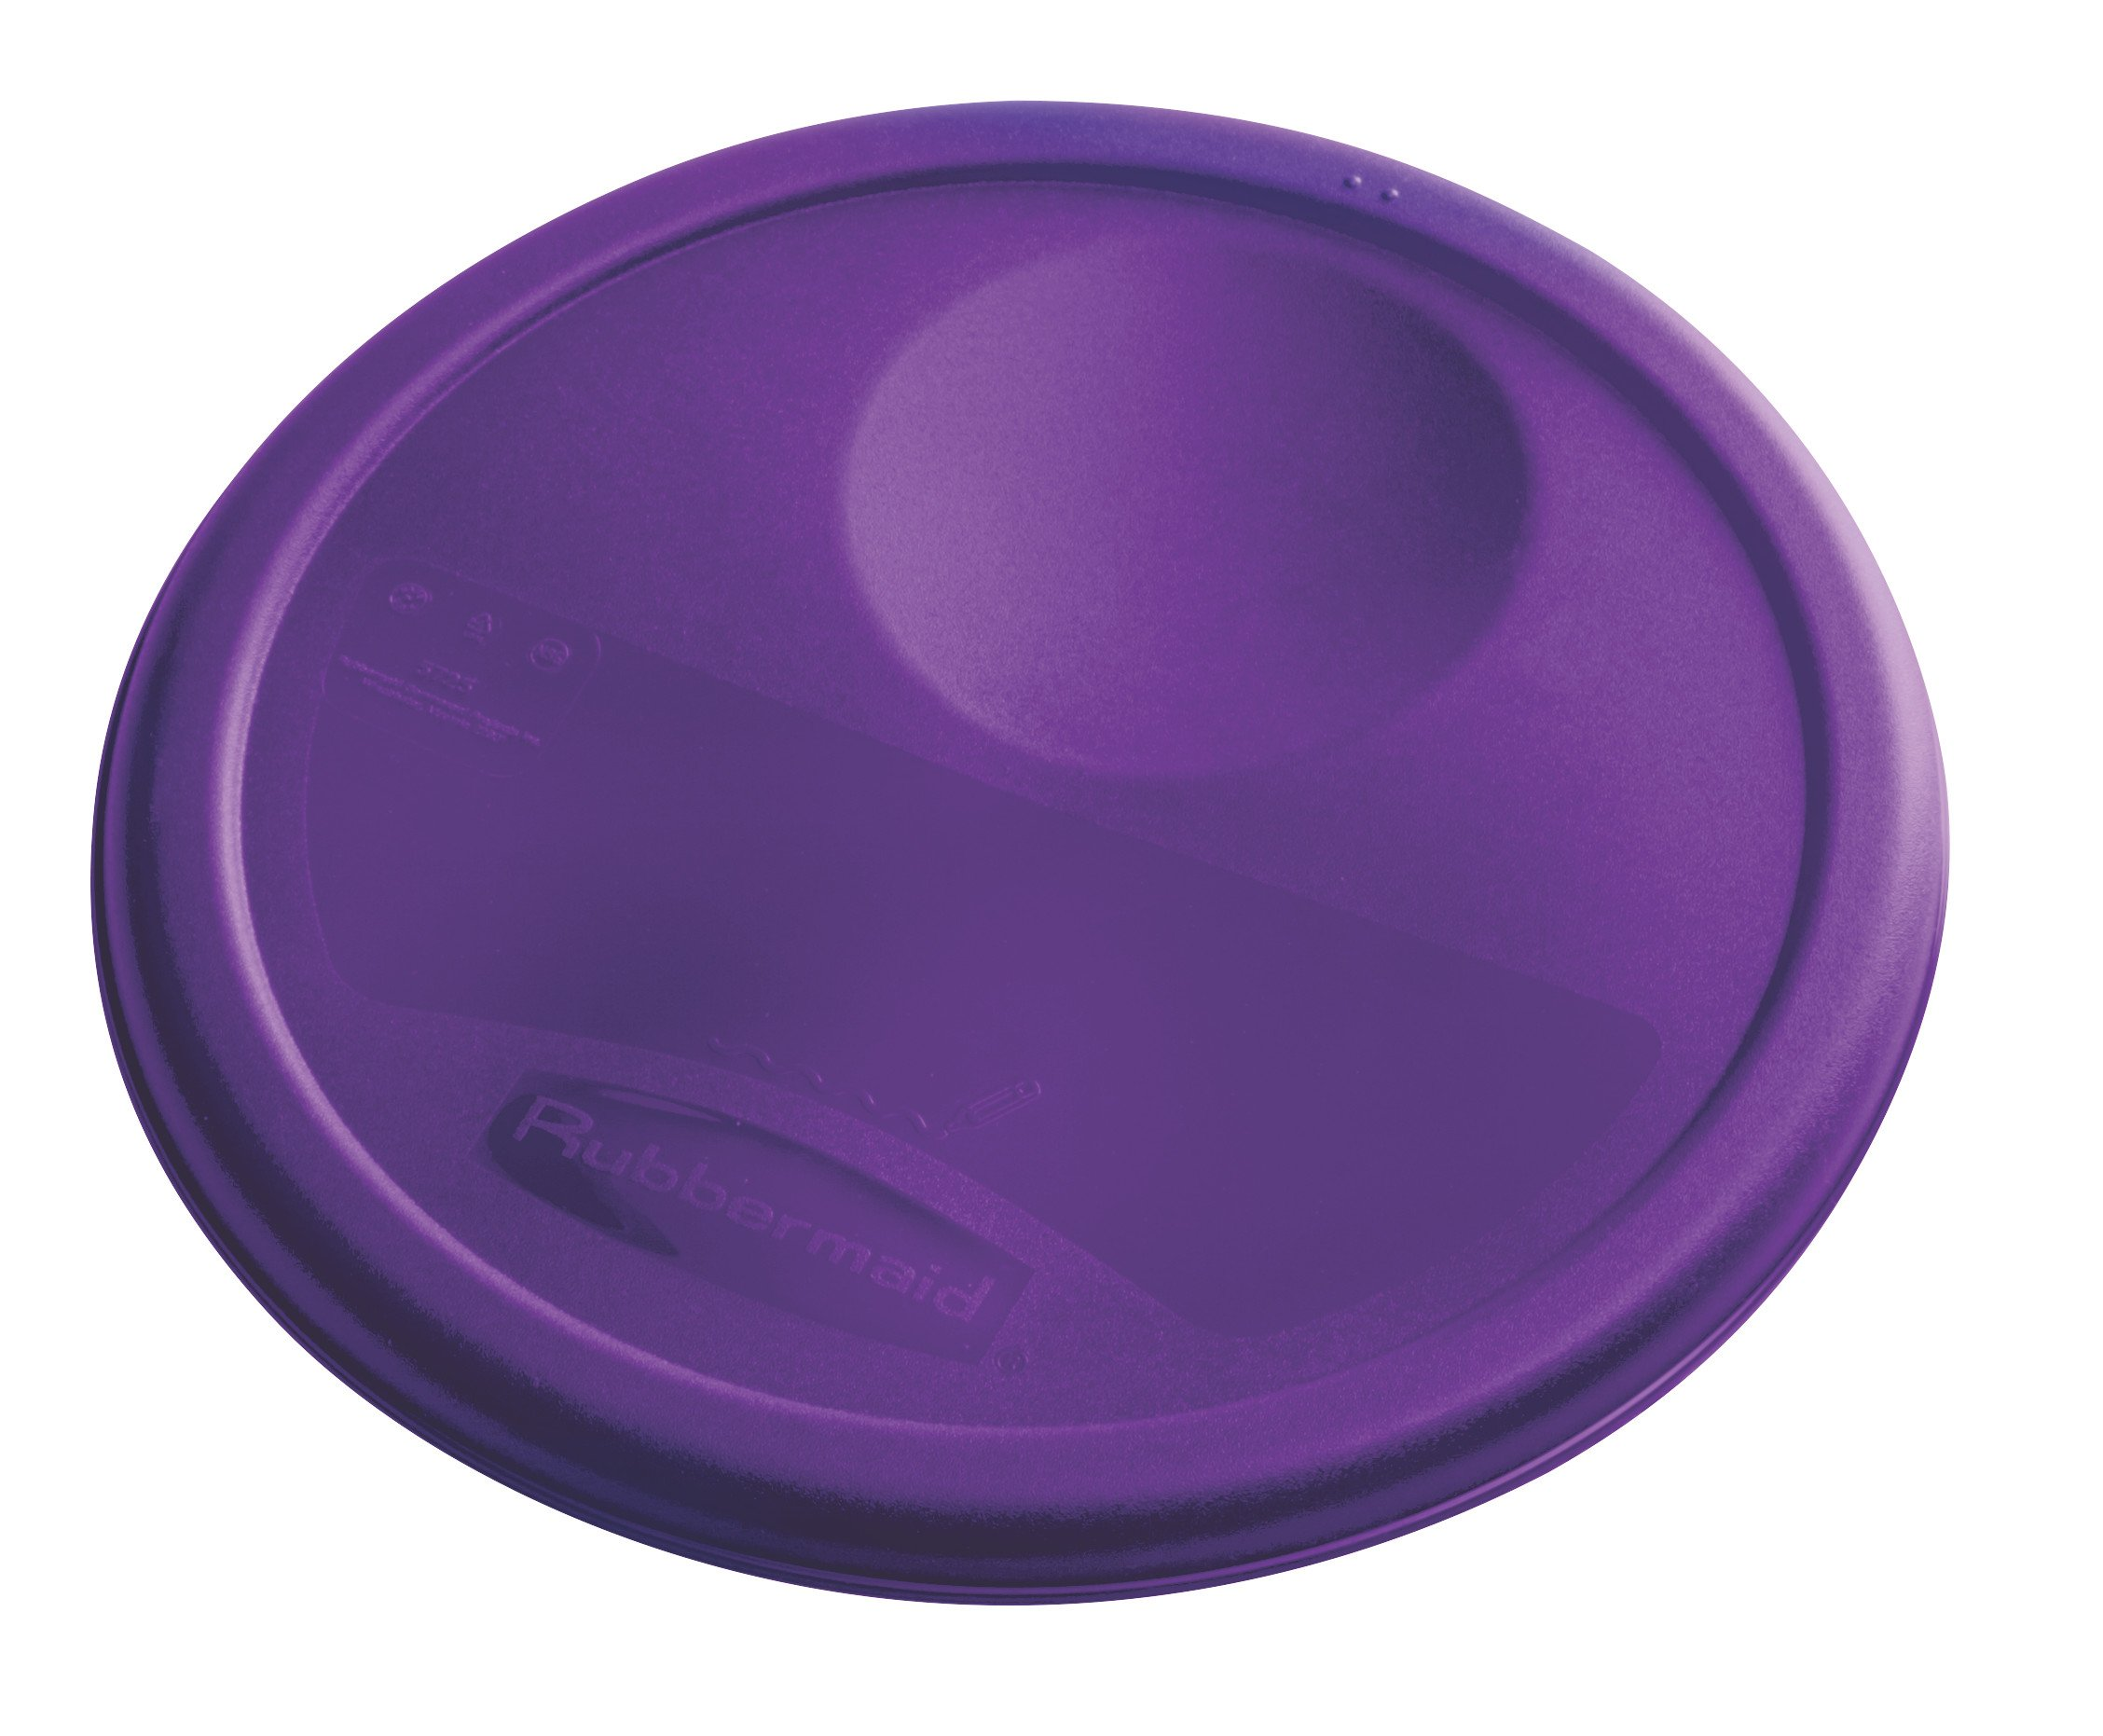 Rubbermaid Commercial Products 1980384 Rubbermaid Commercial Plastic Food Storage Container Lid, Round, Purple, 8 Quart